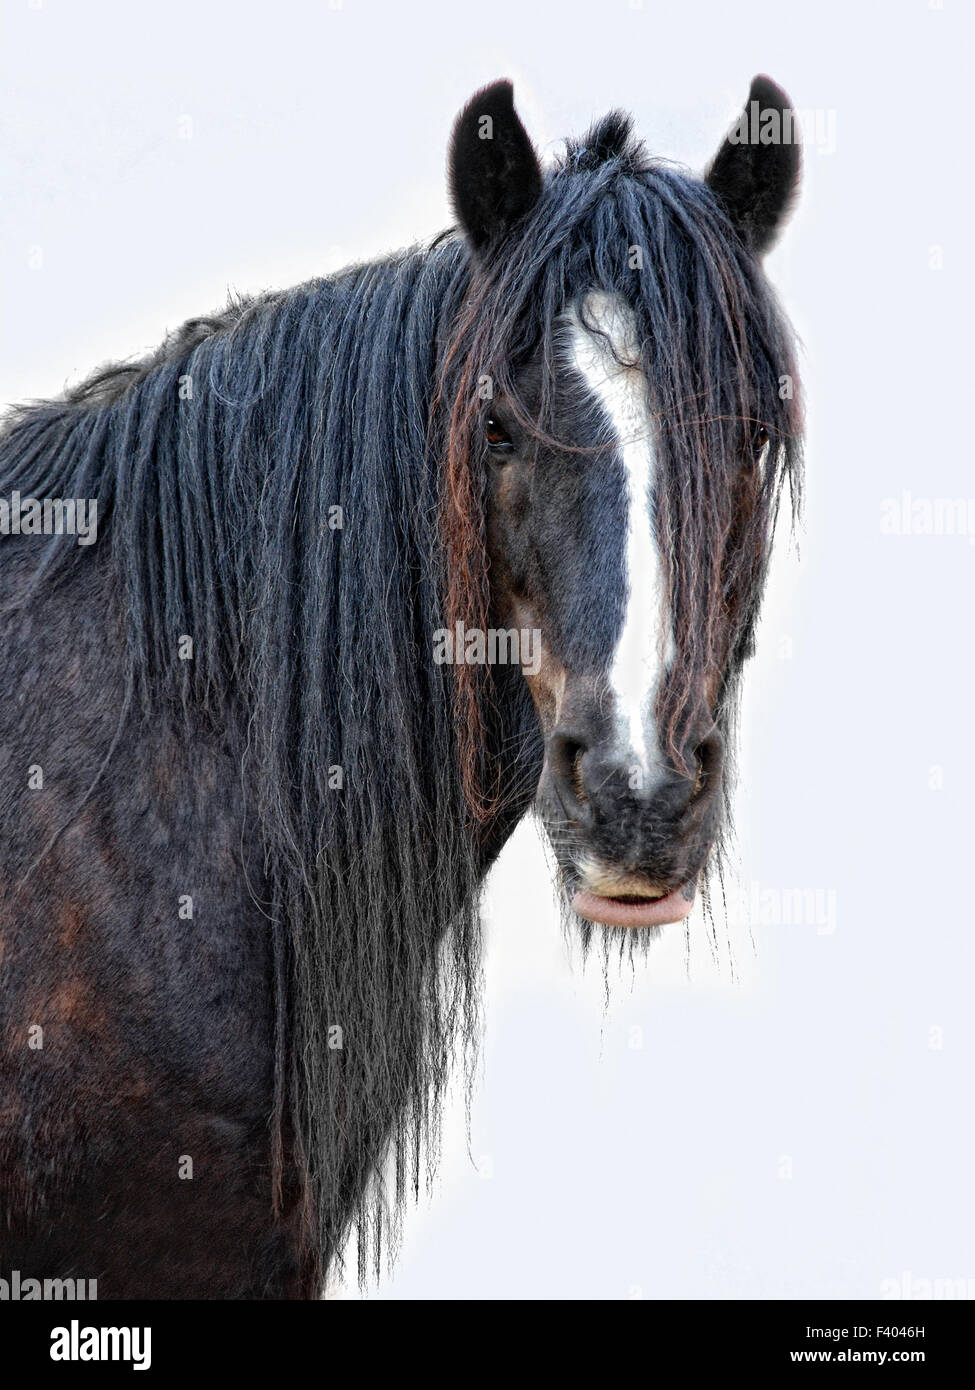 Horse with no name Photo Stock